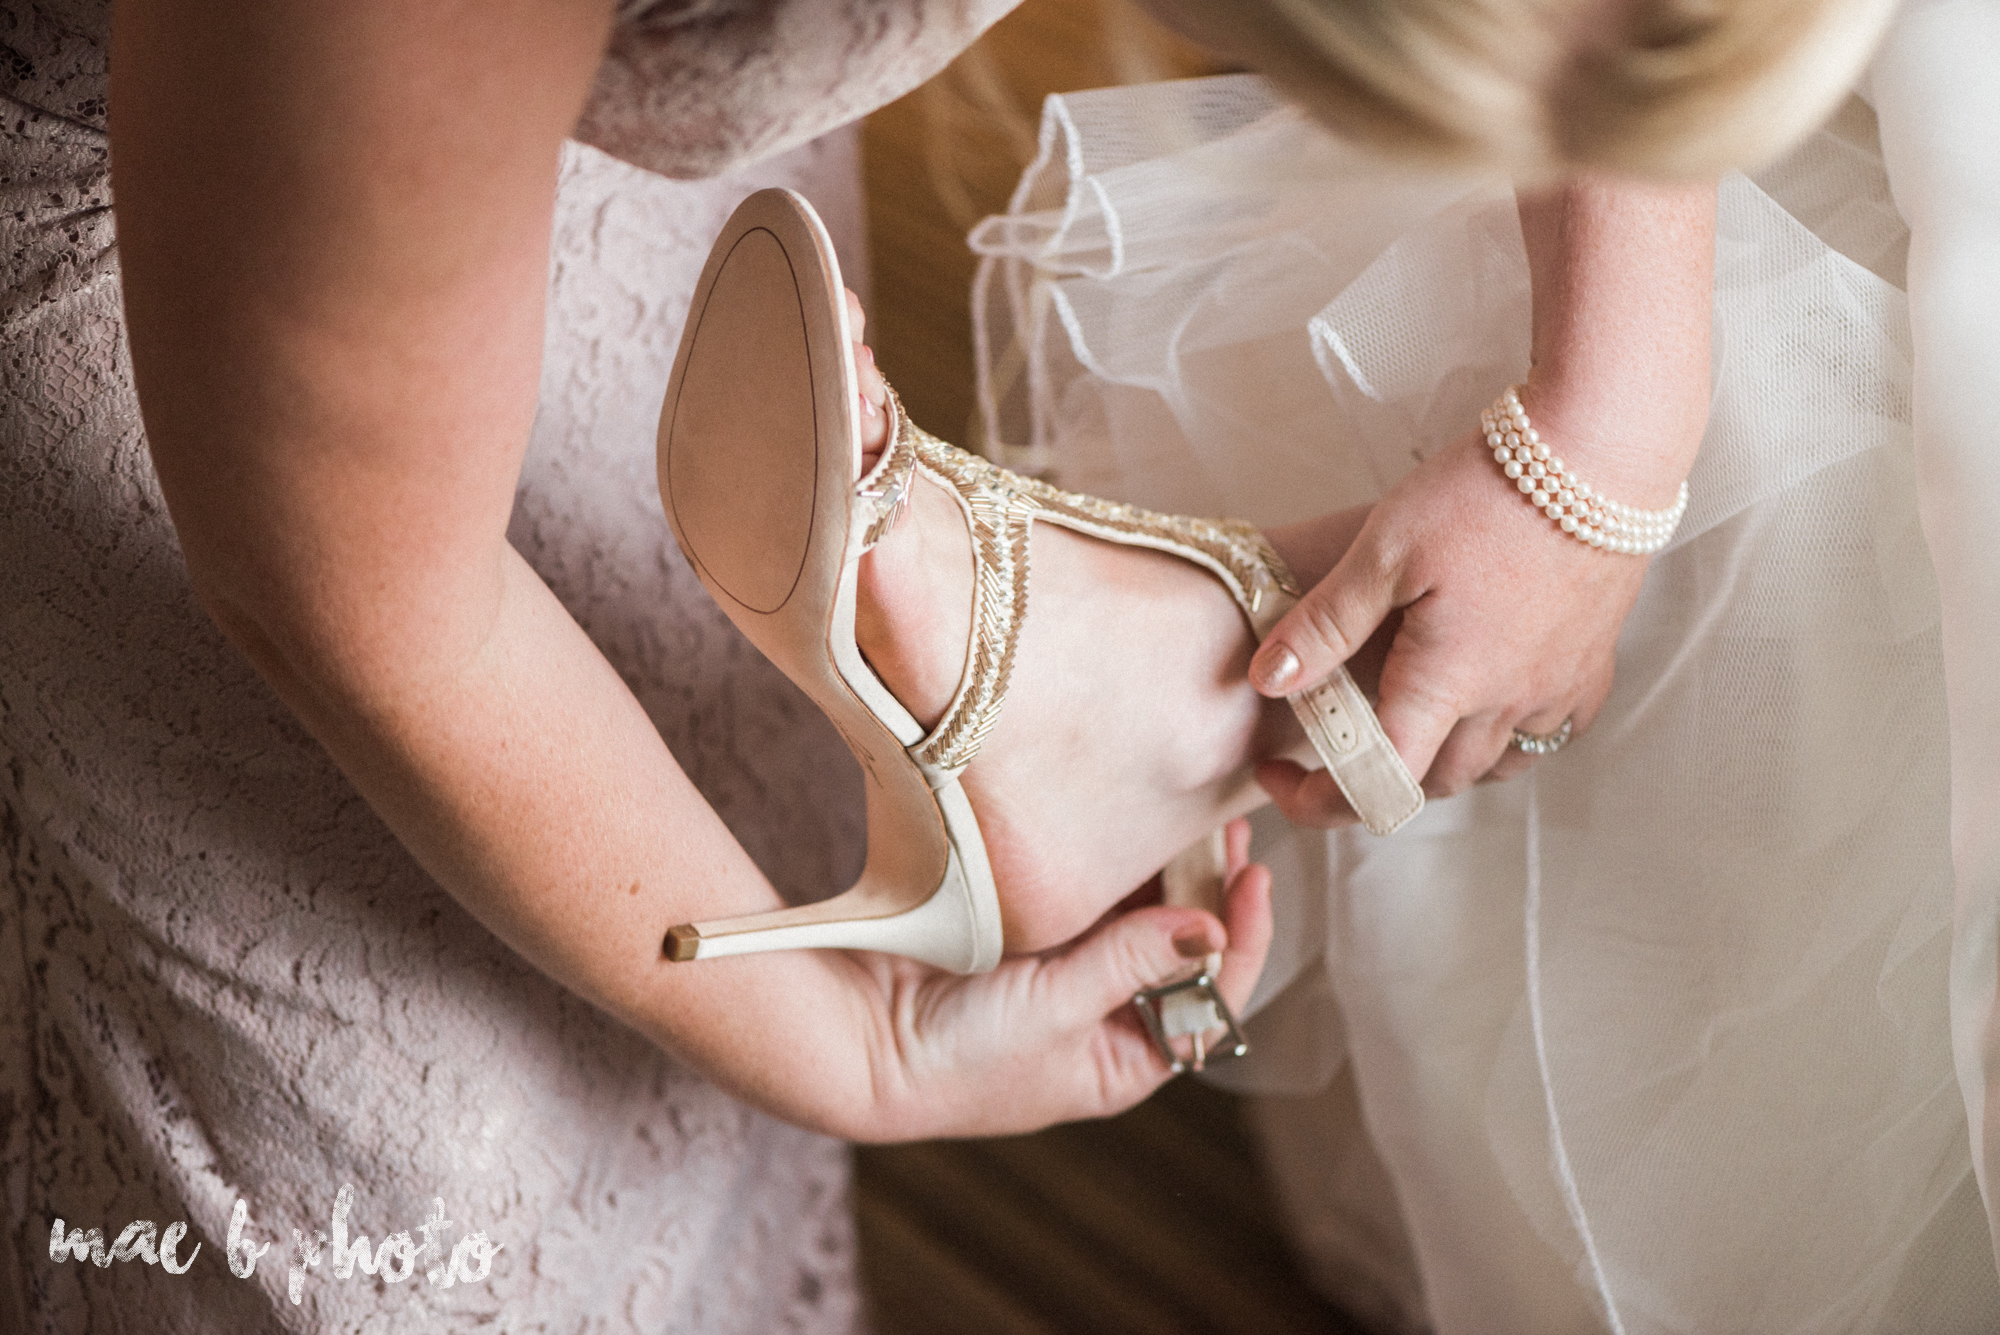 emily and michael's industrial chic summer country club wedding at the lake club in poland ohio photographed by cleveland wedding photographer mae b photo-38.jpg